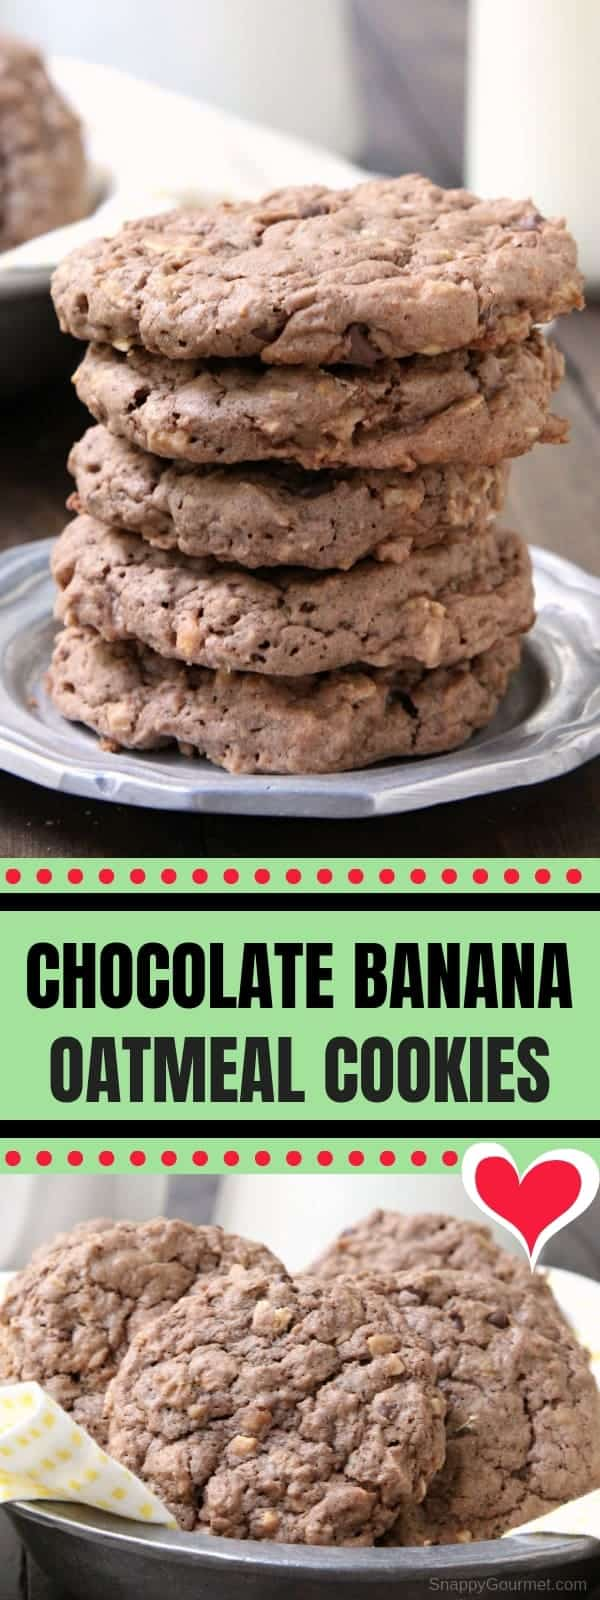 Chocolate Banana Oatmeal Cookies Recipe - easy brownie-like homemade oatmeal cookie recipe. Soft and chewy with banana, chocolate, toffee, and oats. #SnappyGourmet #Cookie #Dessert #Chocolate #Banana #Toffee #Oatmeal #Homemade #Recipe